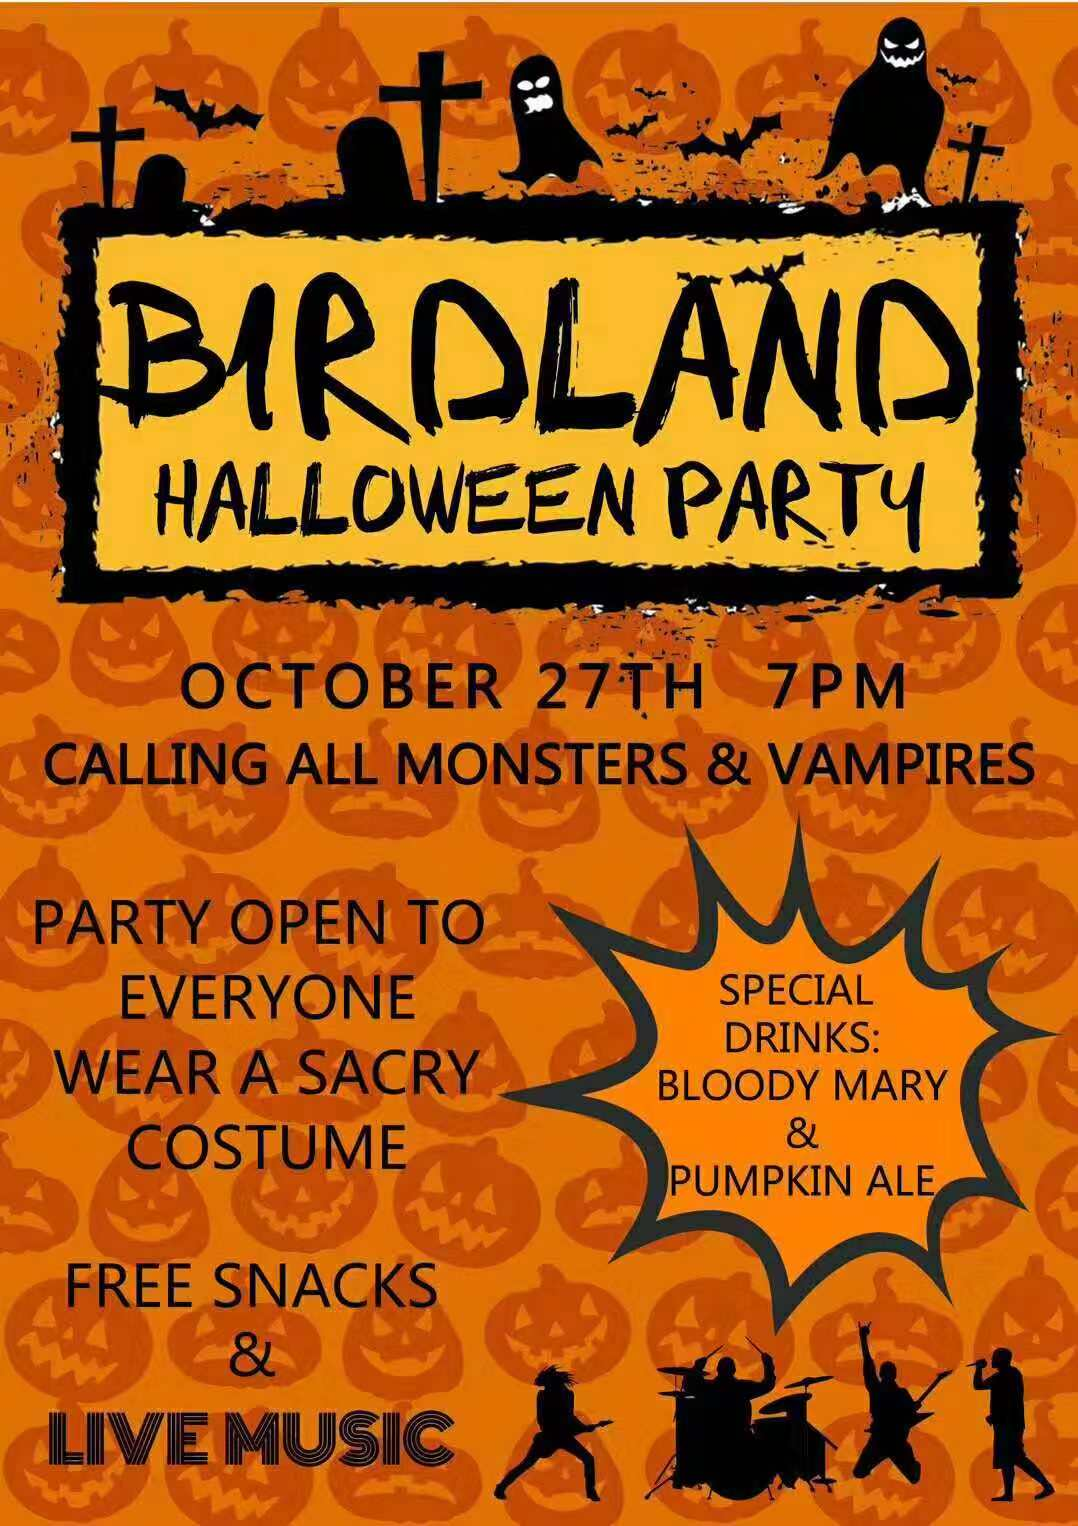 Birdland Halloween Party